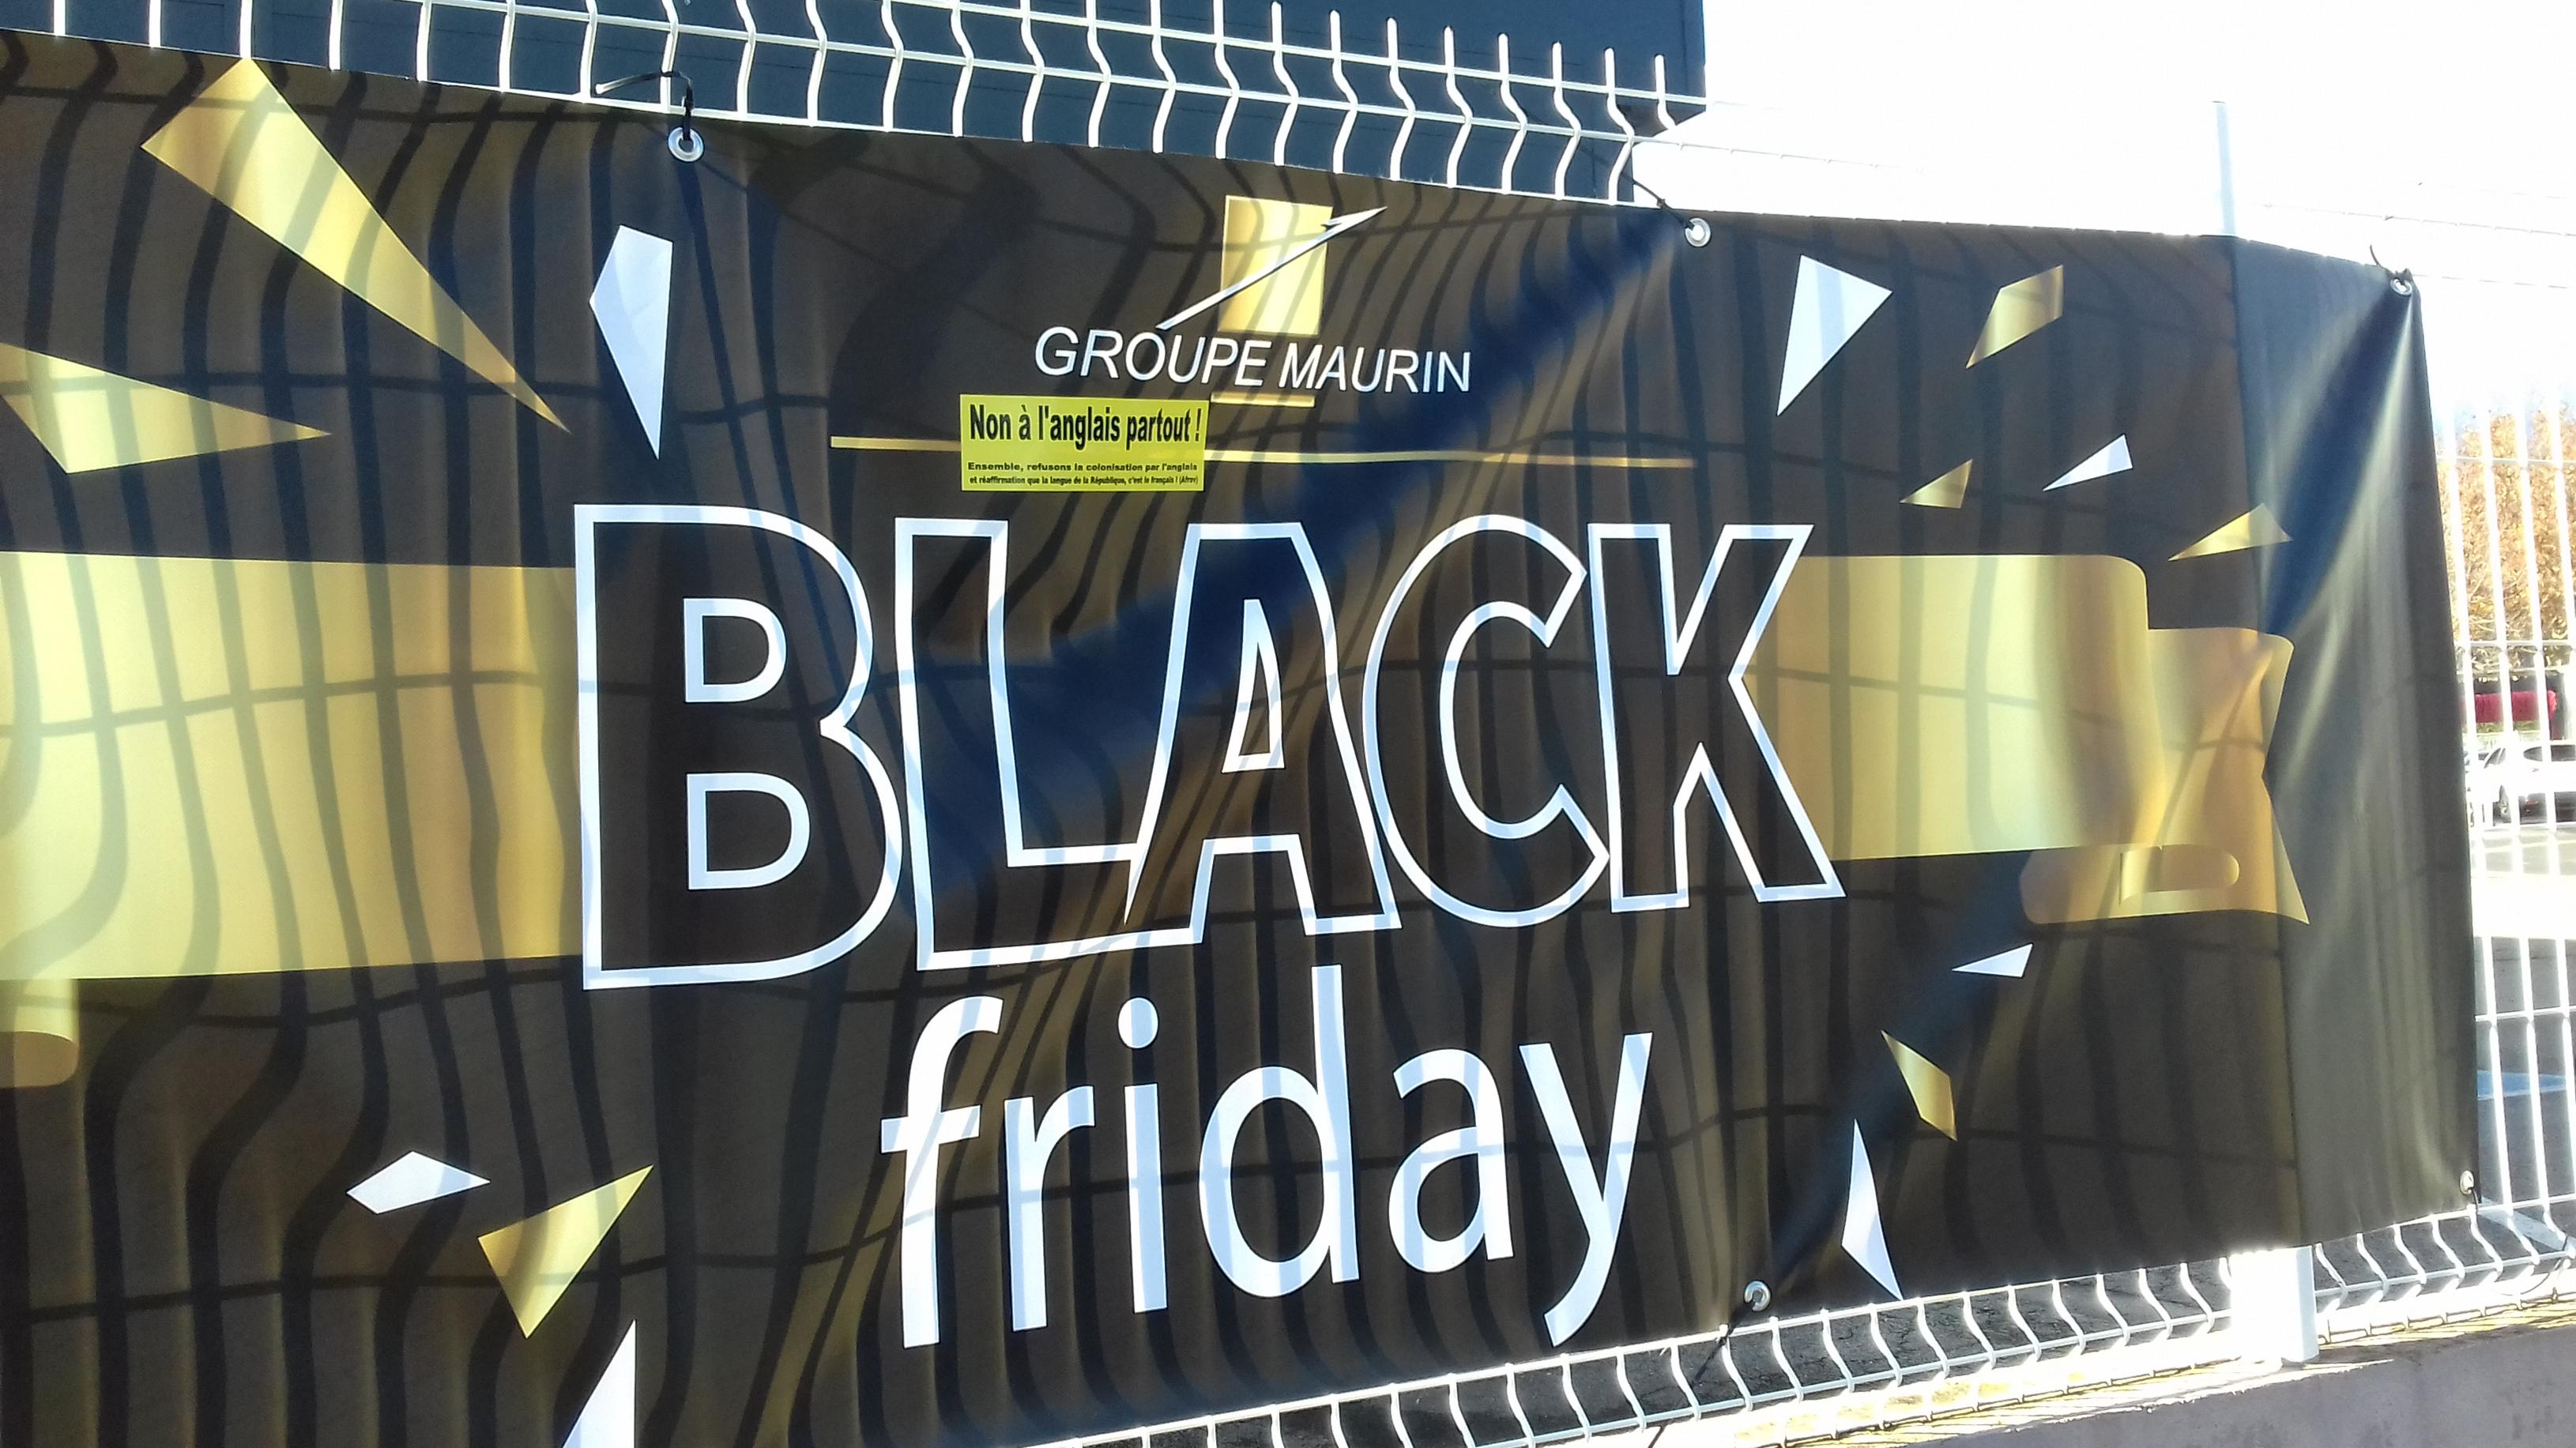 Le Groupe Maurin et le Black Friday